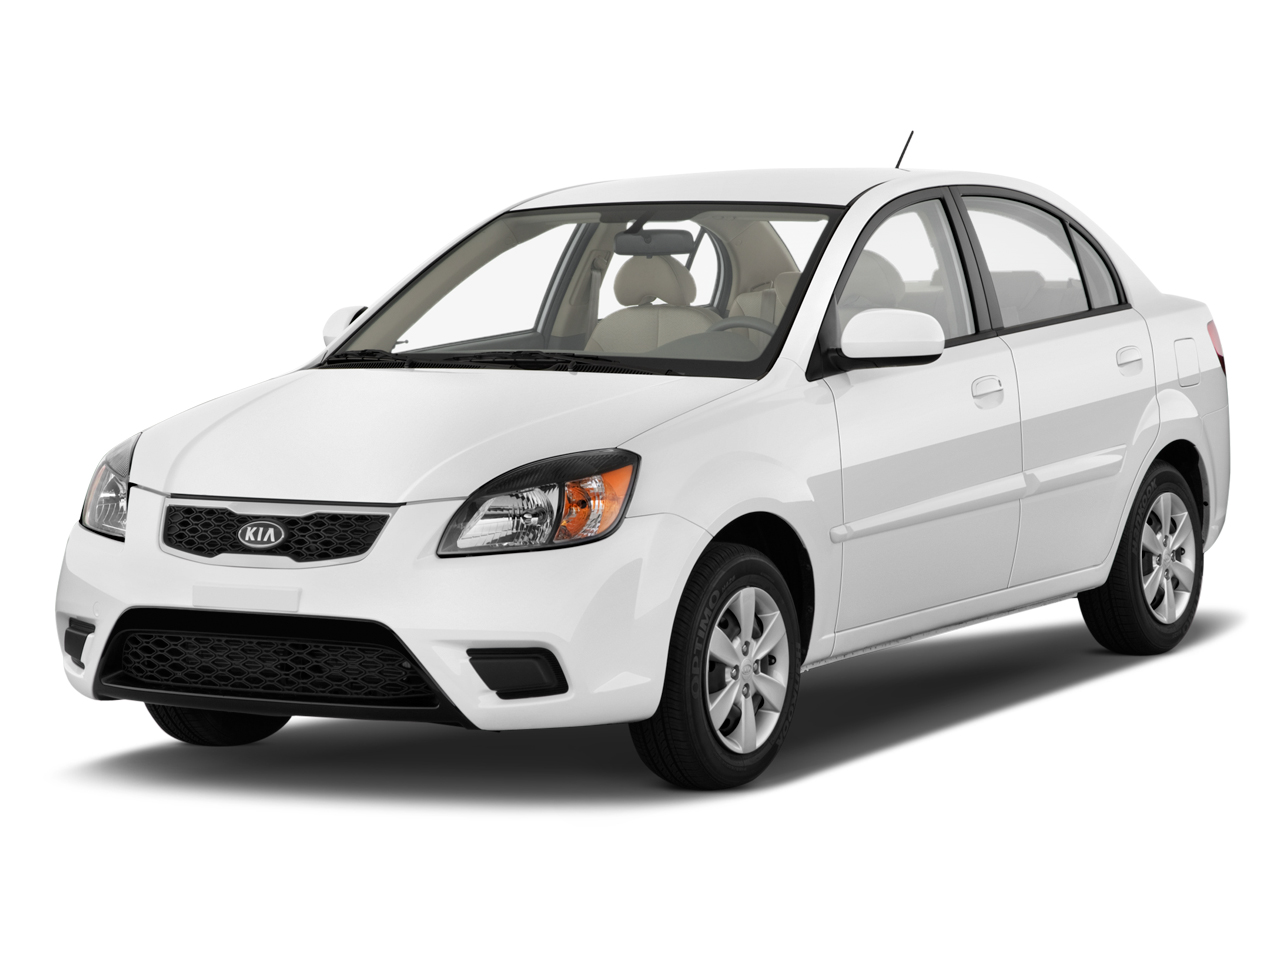 2011 kia rio review ratings specs prices and photos the car connection. Black Bedroom Furniture Sets. Home Design Ideas